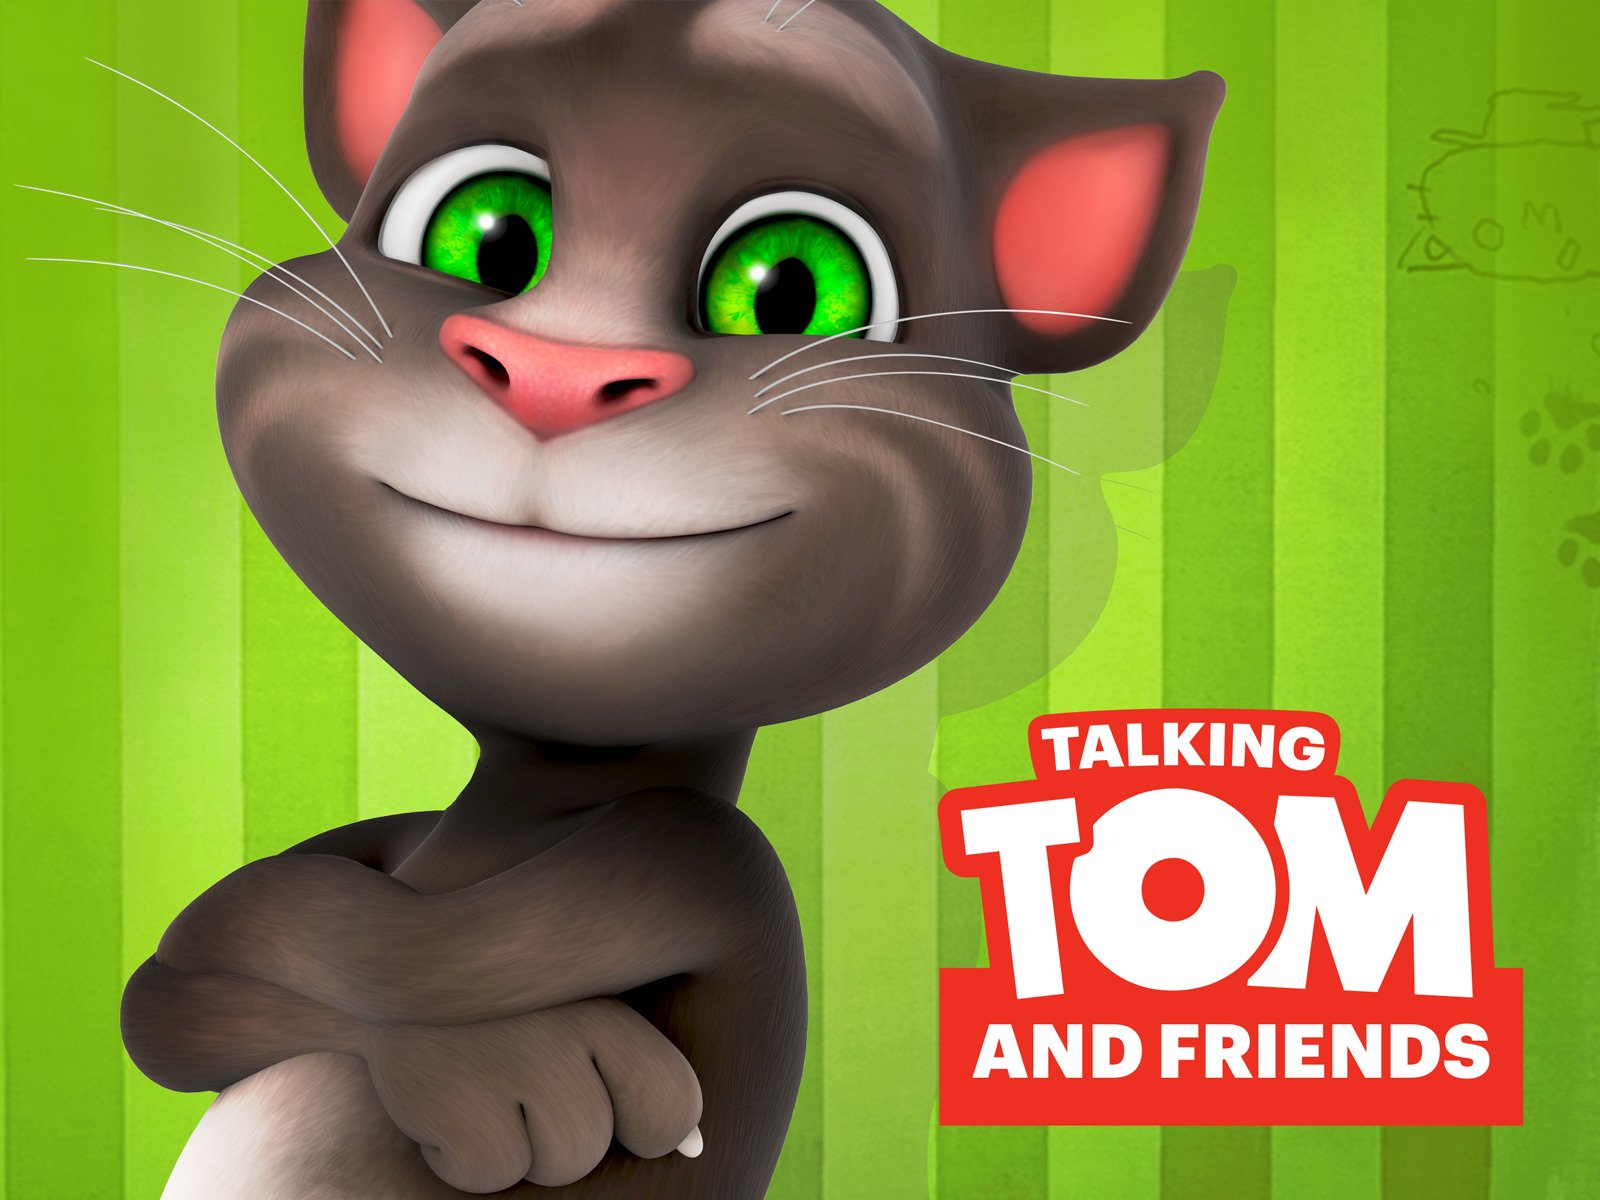 Amazon.com: Talking Tom and Friends - Season 1: Boris Dolenc: Amazon Digital Services LLC